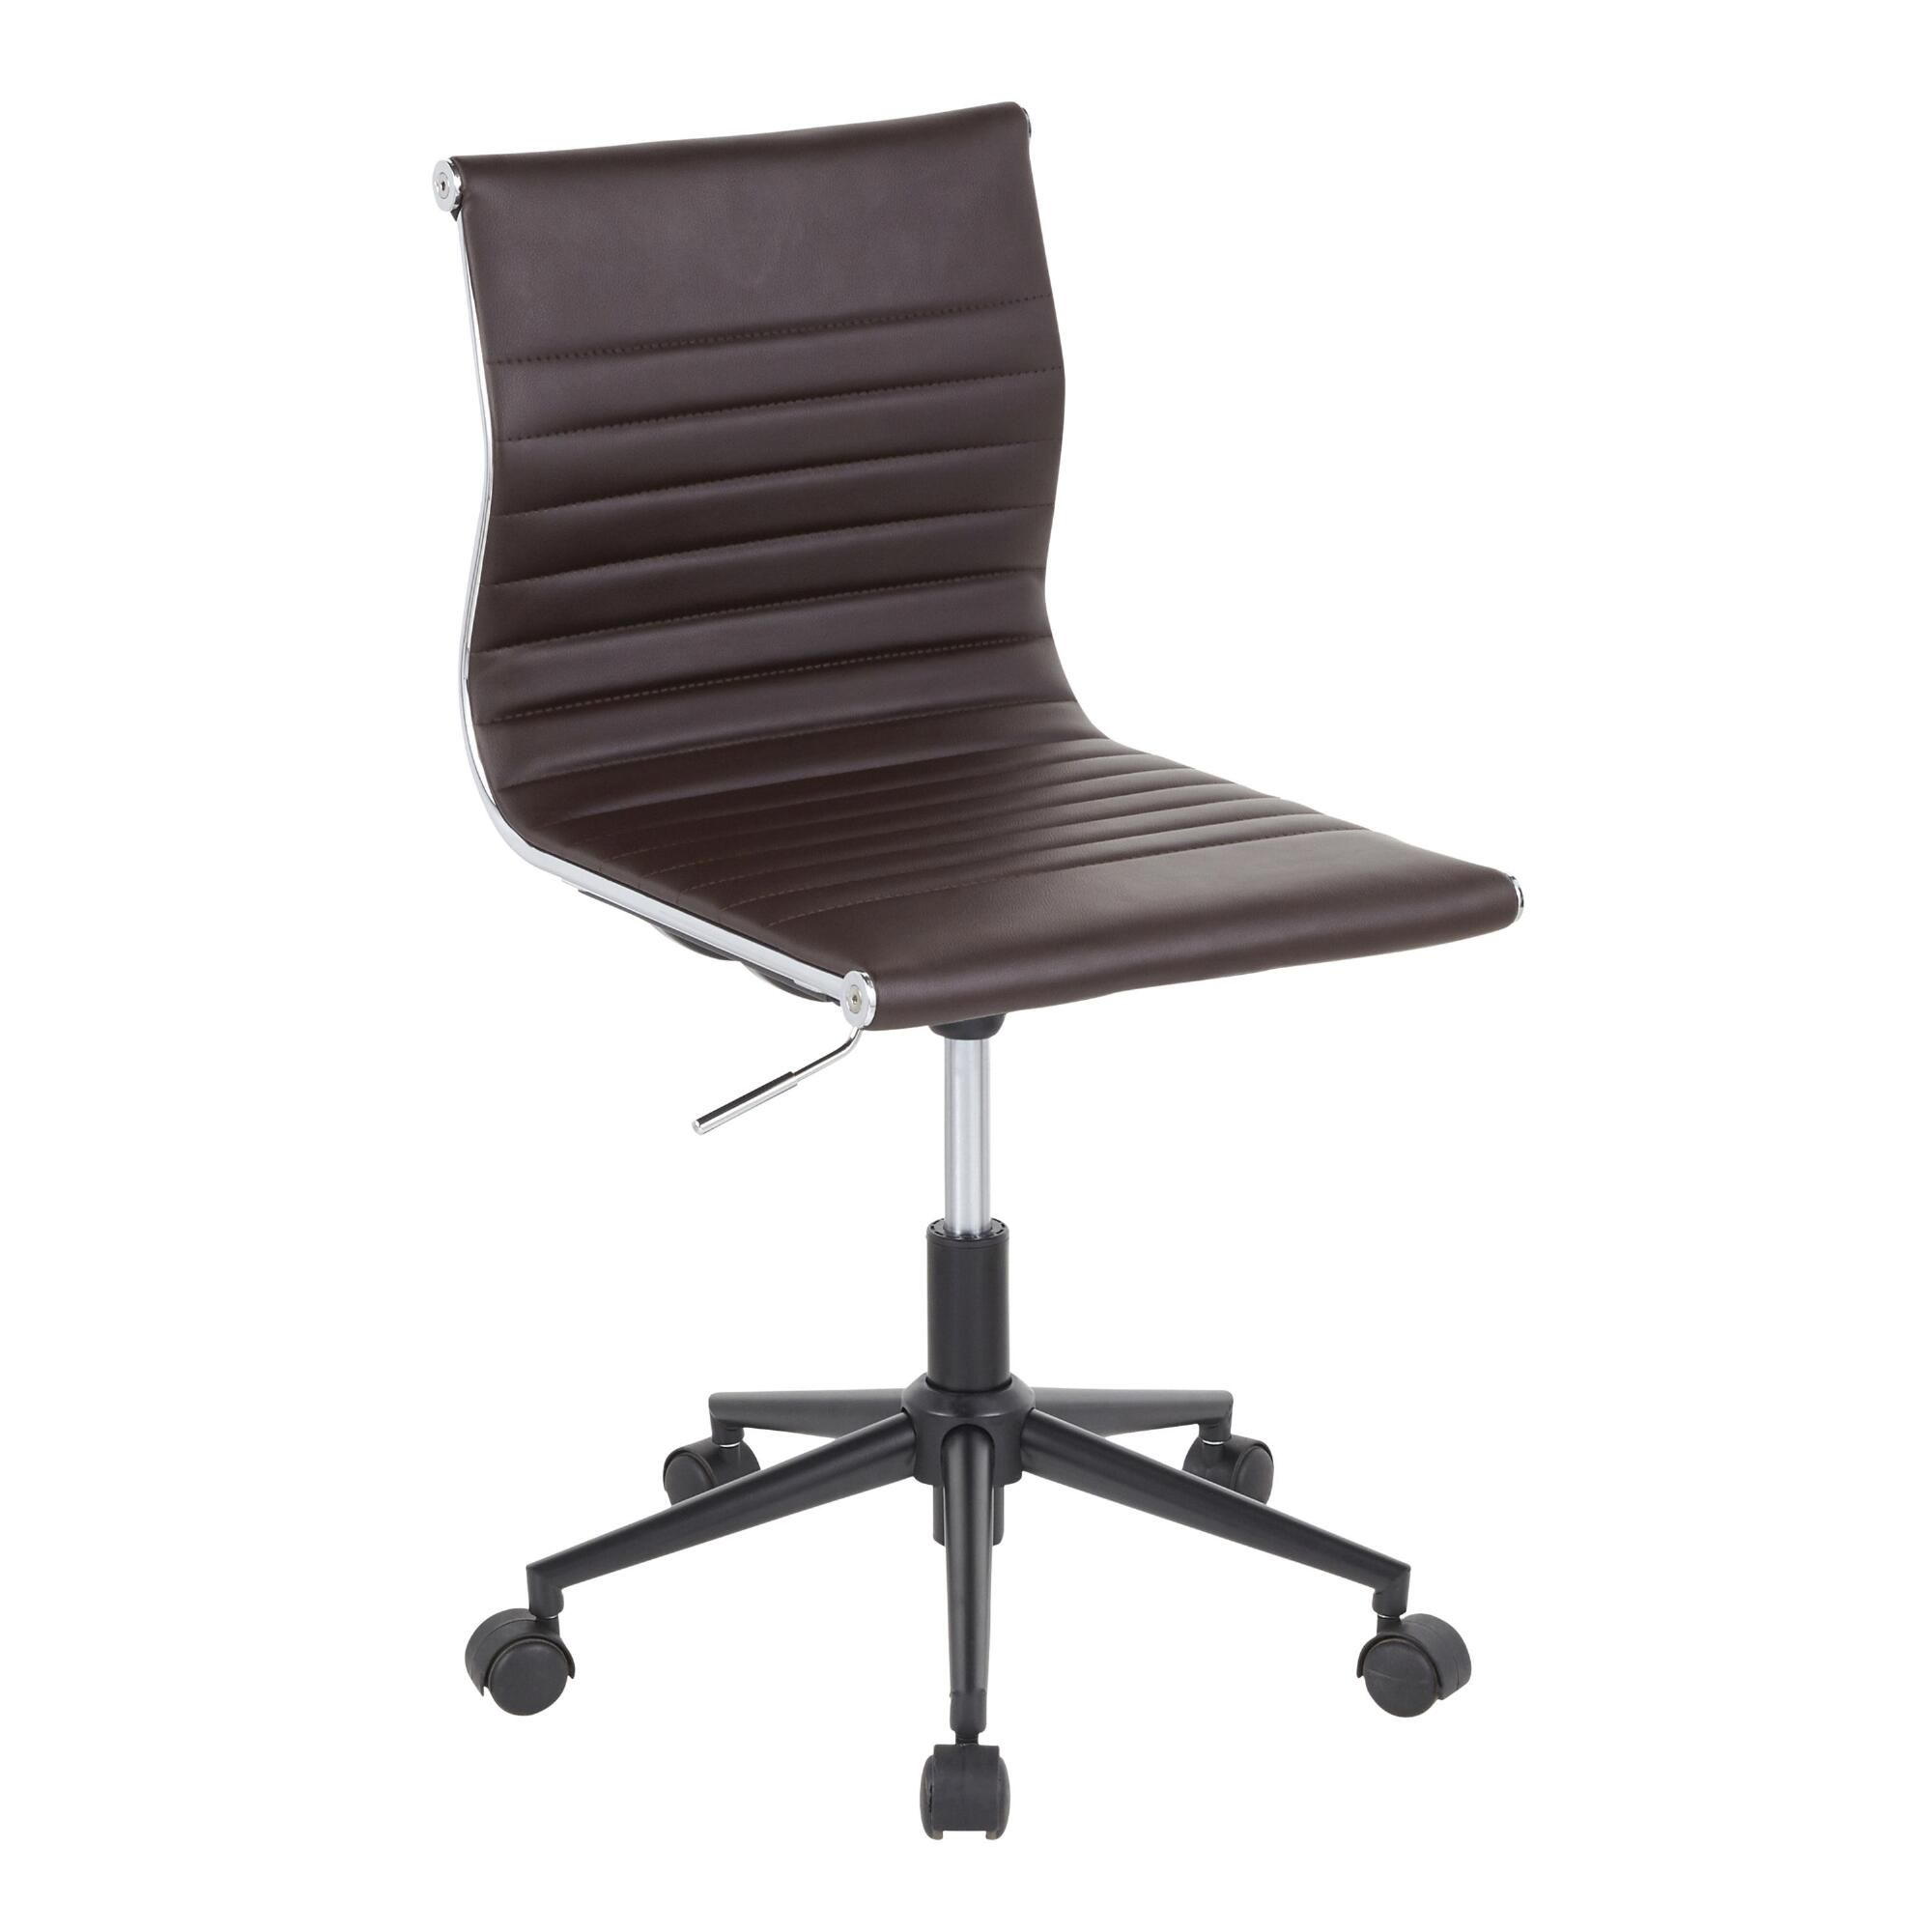 Decals For Baby Room, Faux Leather Ayden Upholstered Office Chair World Market In 2020 Lumisource Upholstered Office Chair Task Chair